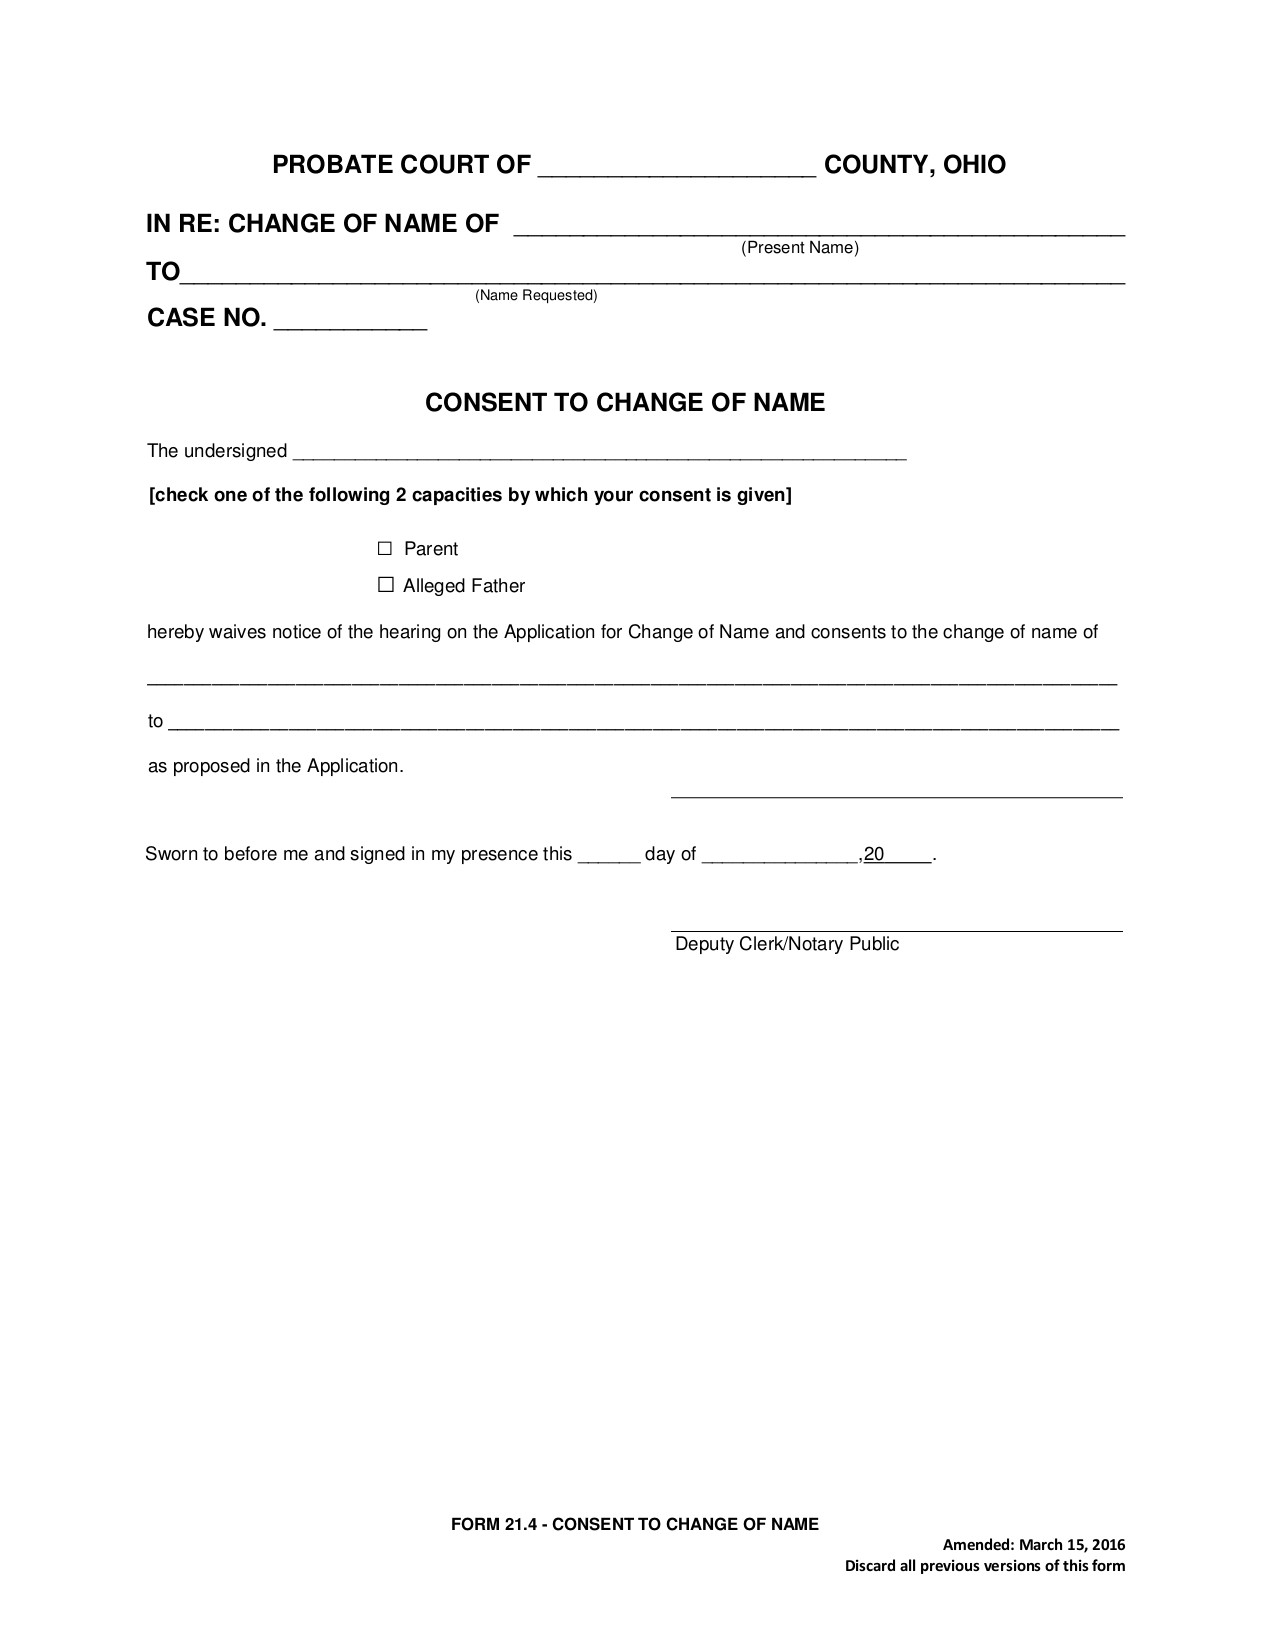 21.4 – Consent to Change of Name | Seneca County Juvenile Probate ...